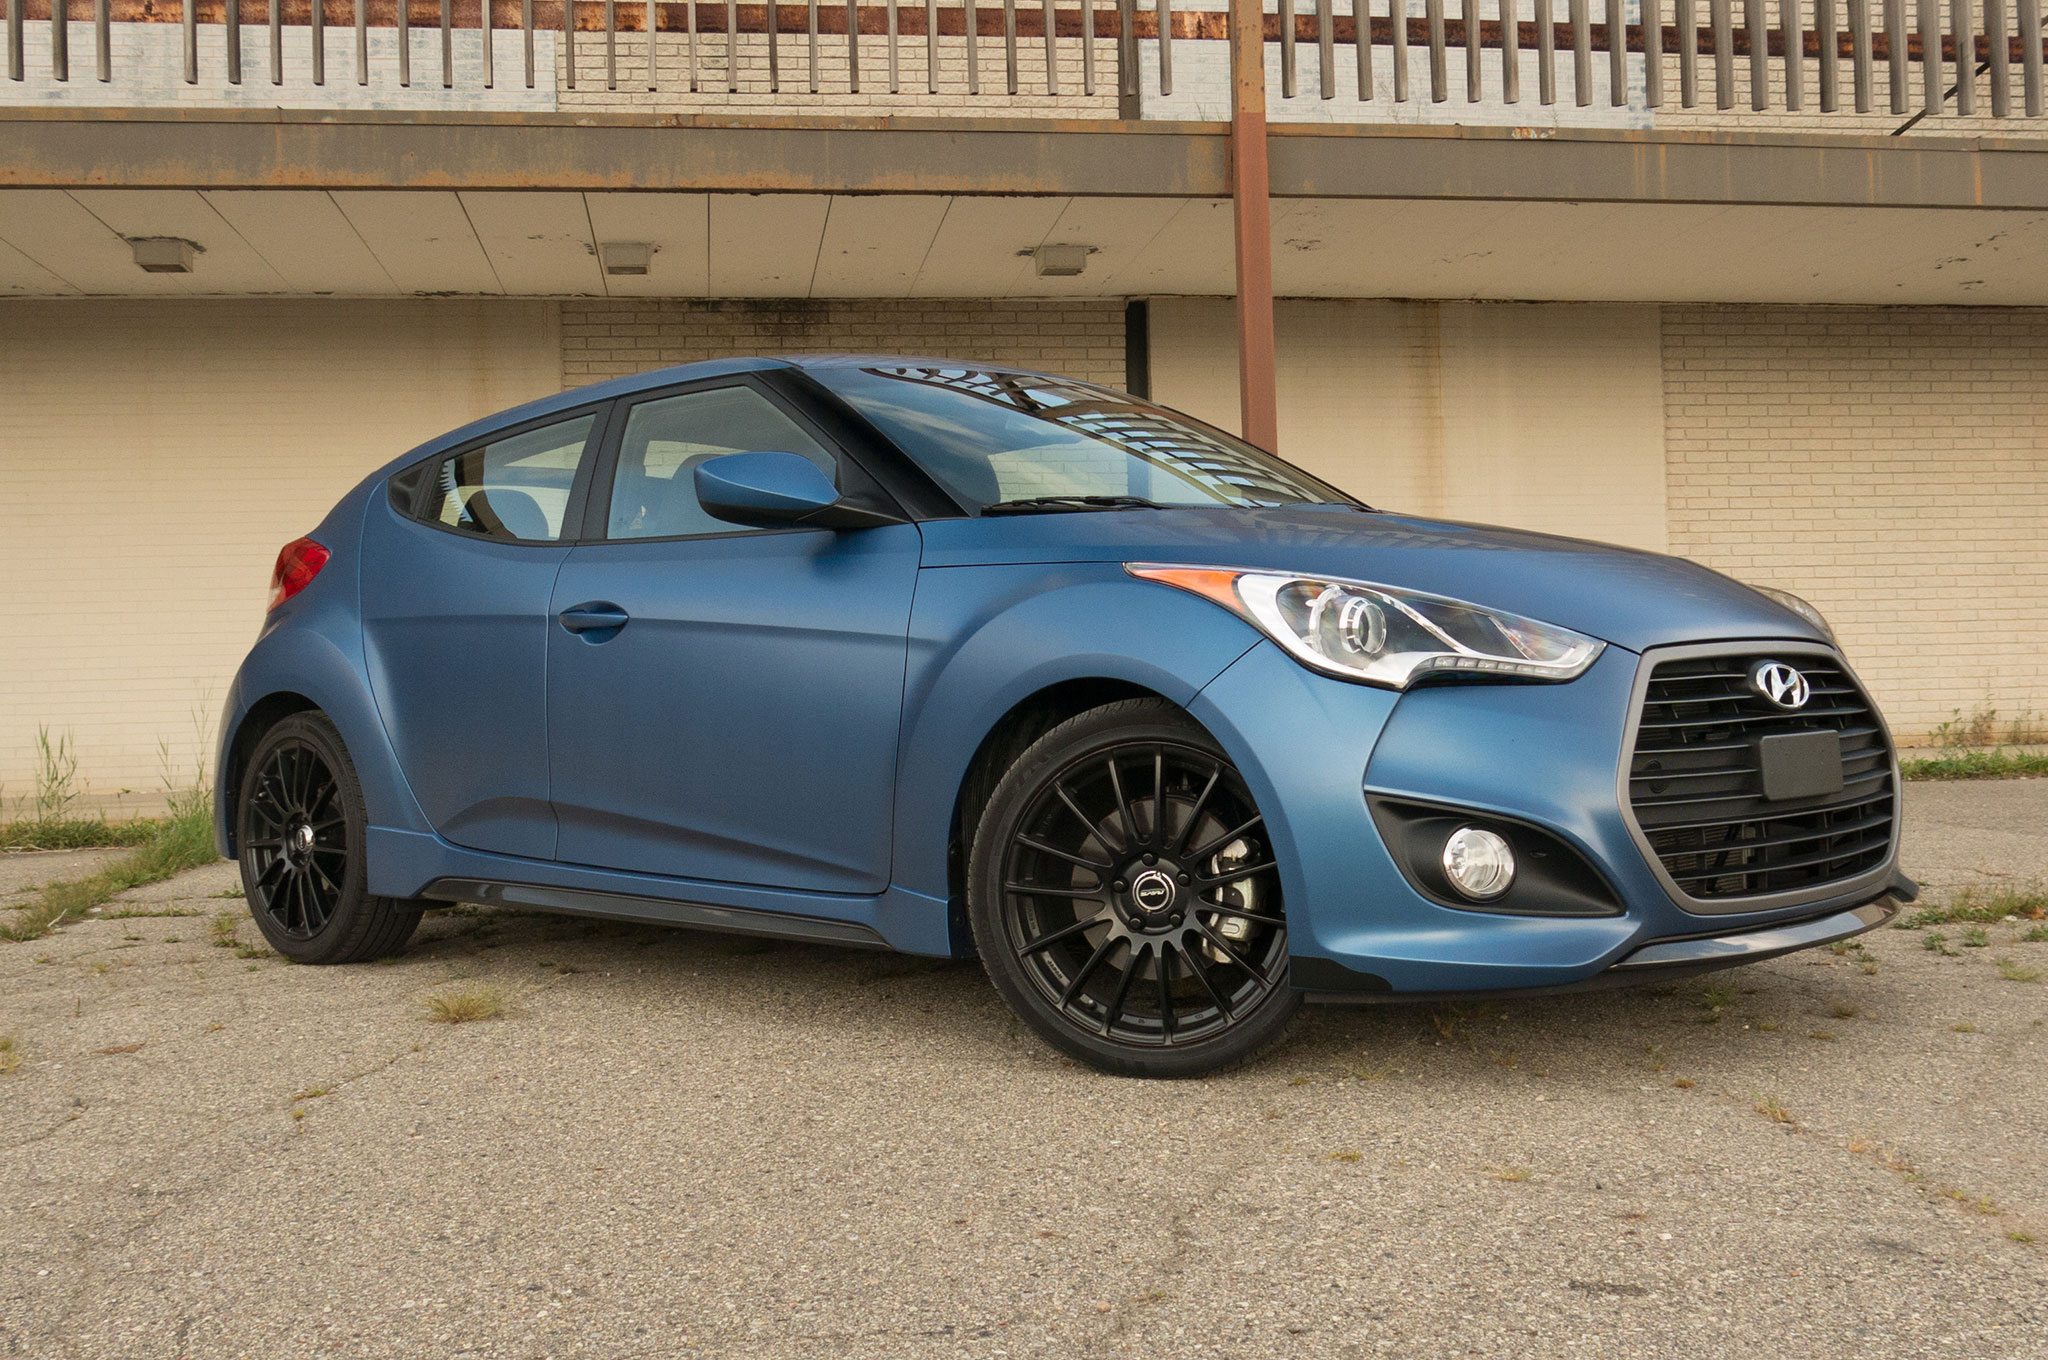 2016 Hyundai Veloster Turbo Rally Edition Review